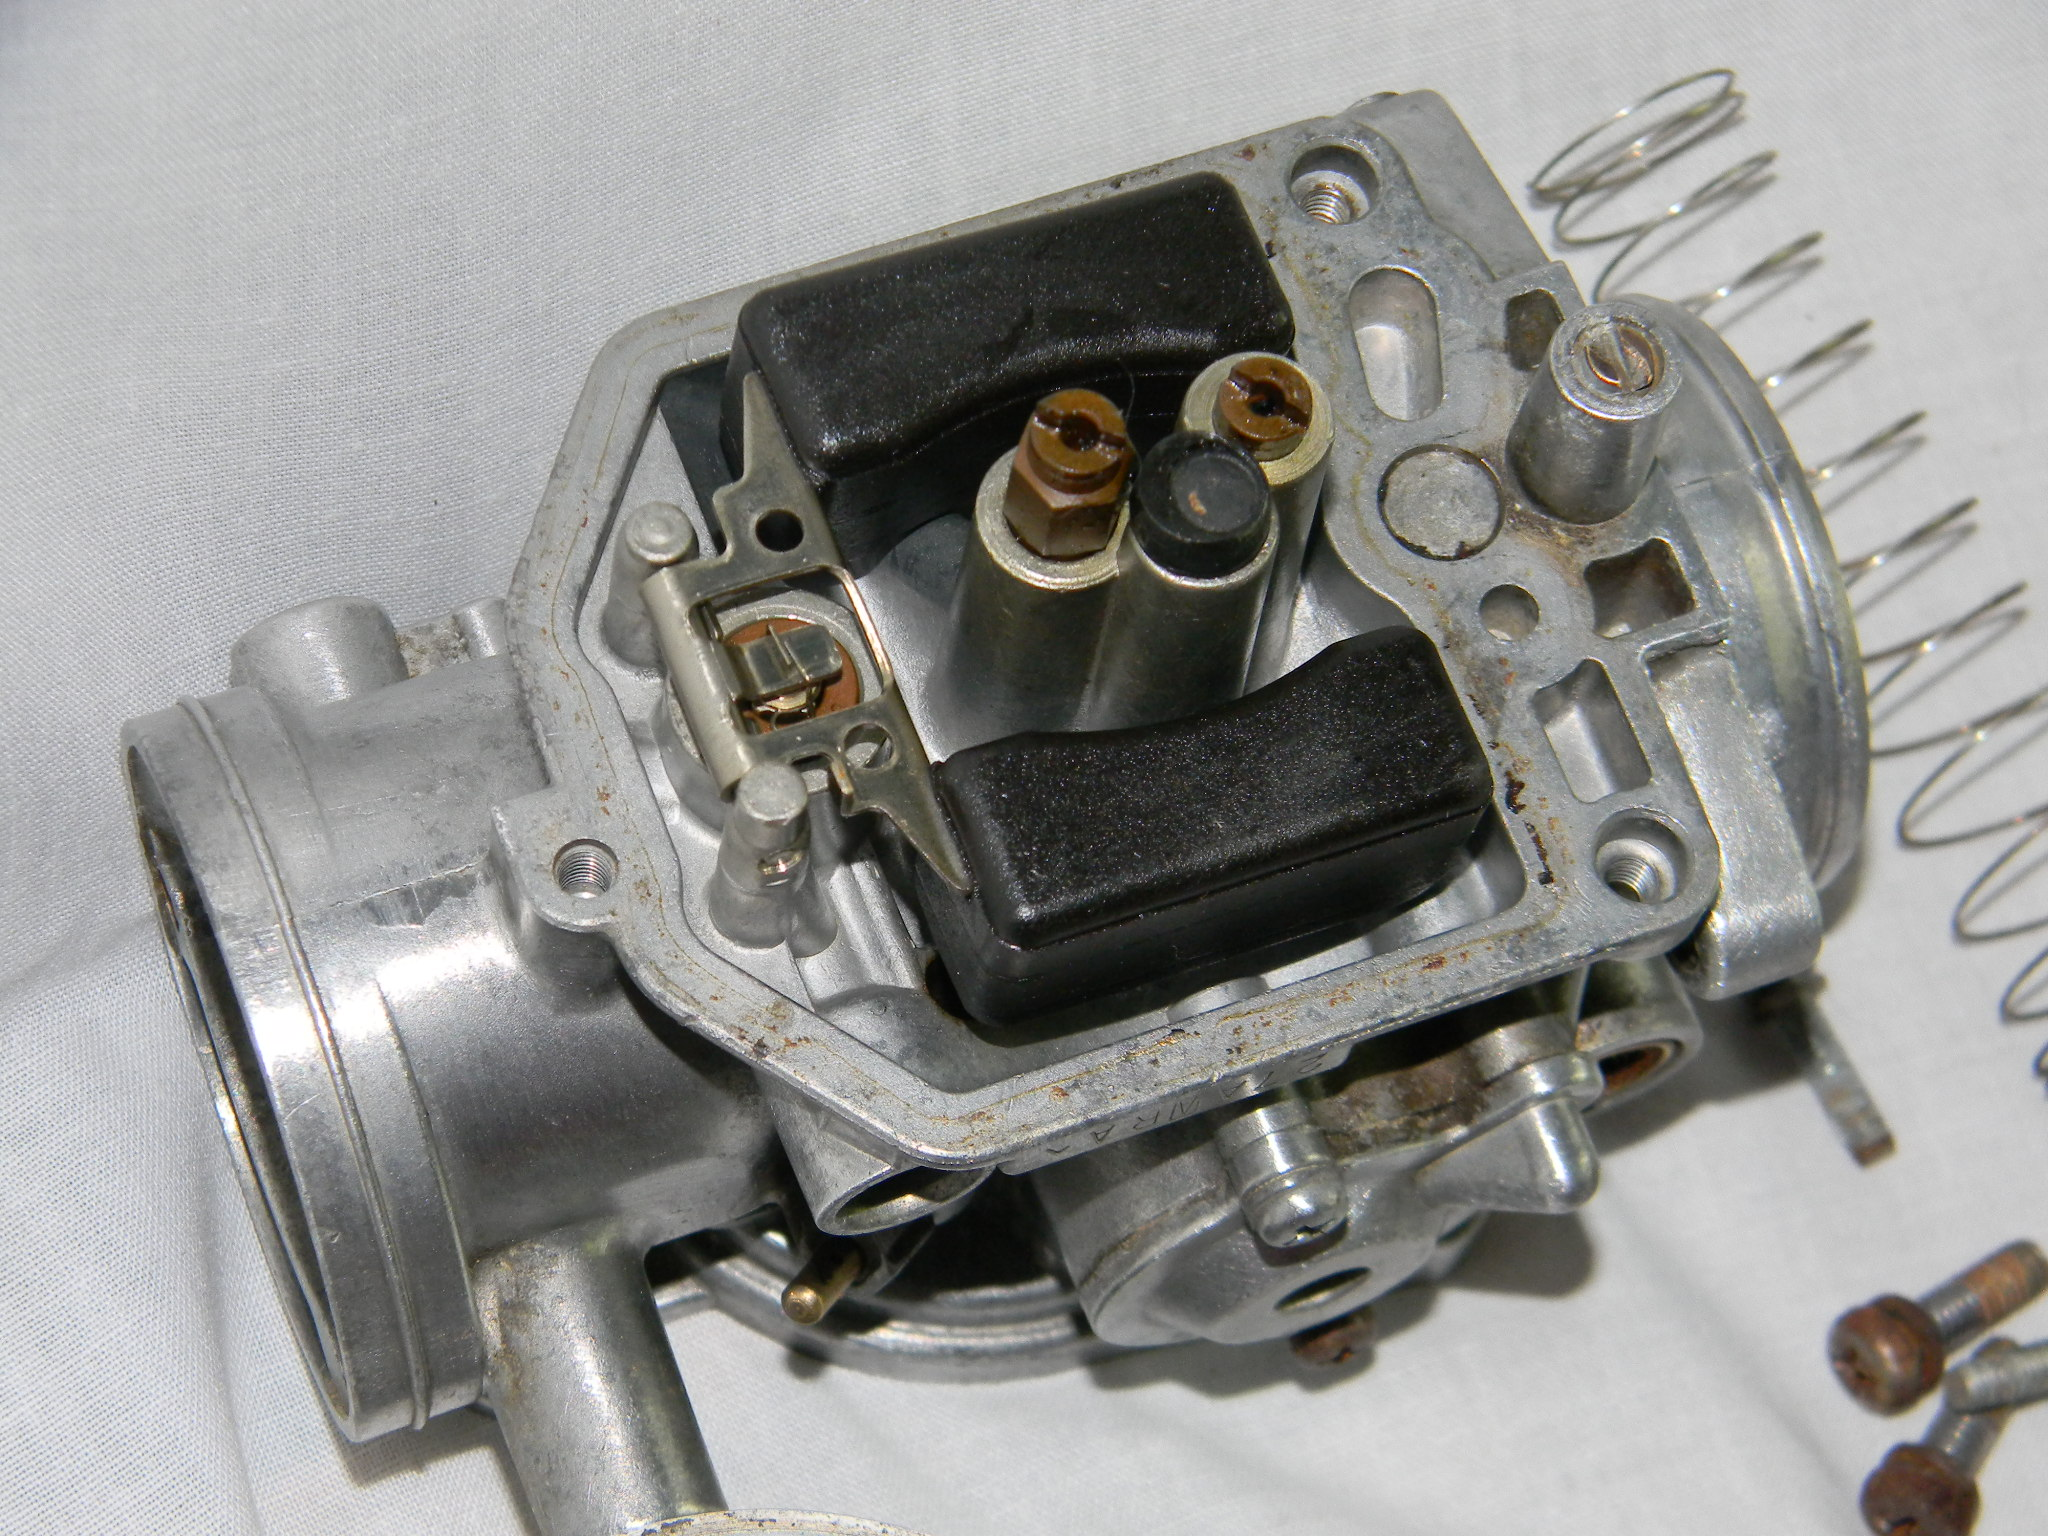 79 CX500 carb set used, will need cleaning and rebuild kit